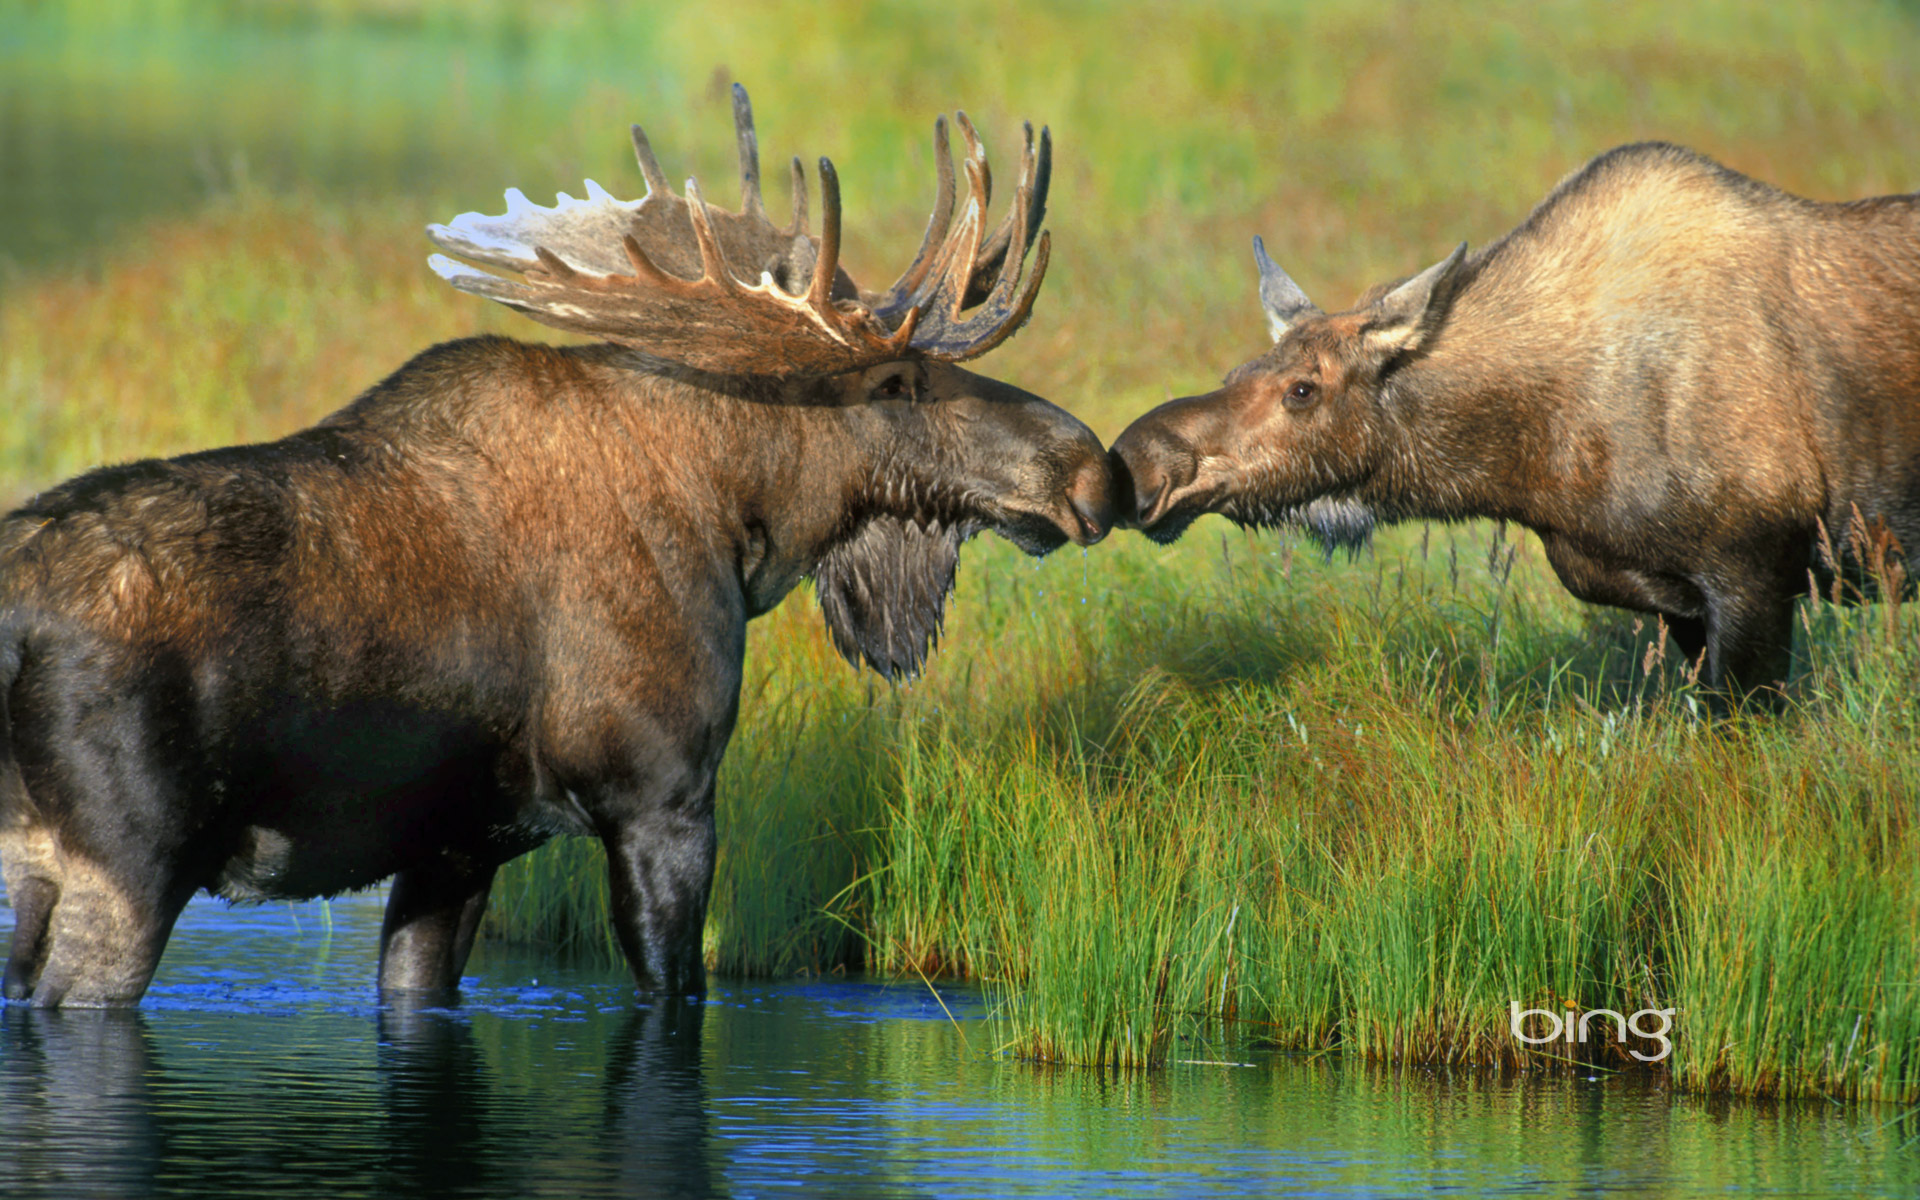 moose hd wallpaper - photo #12